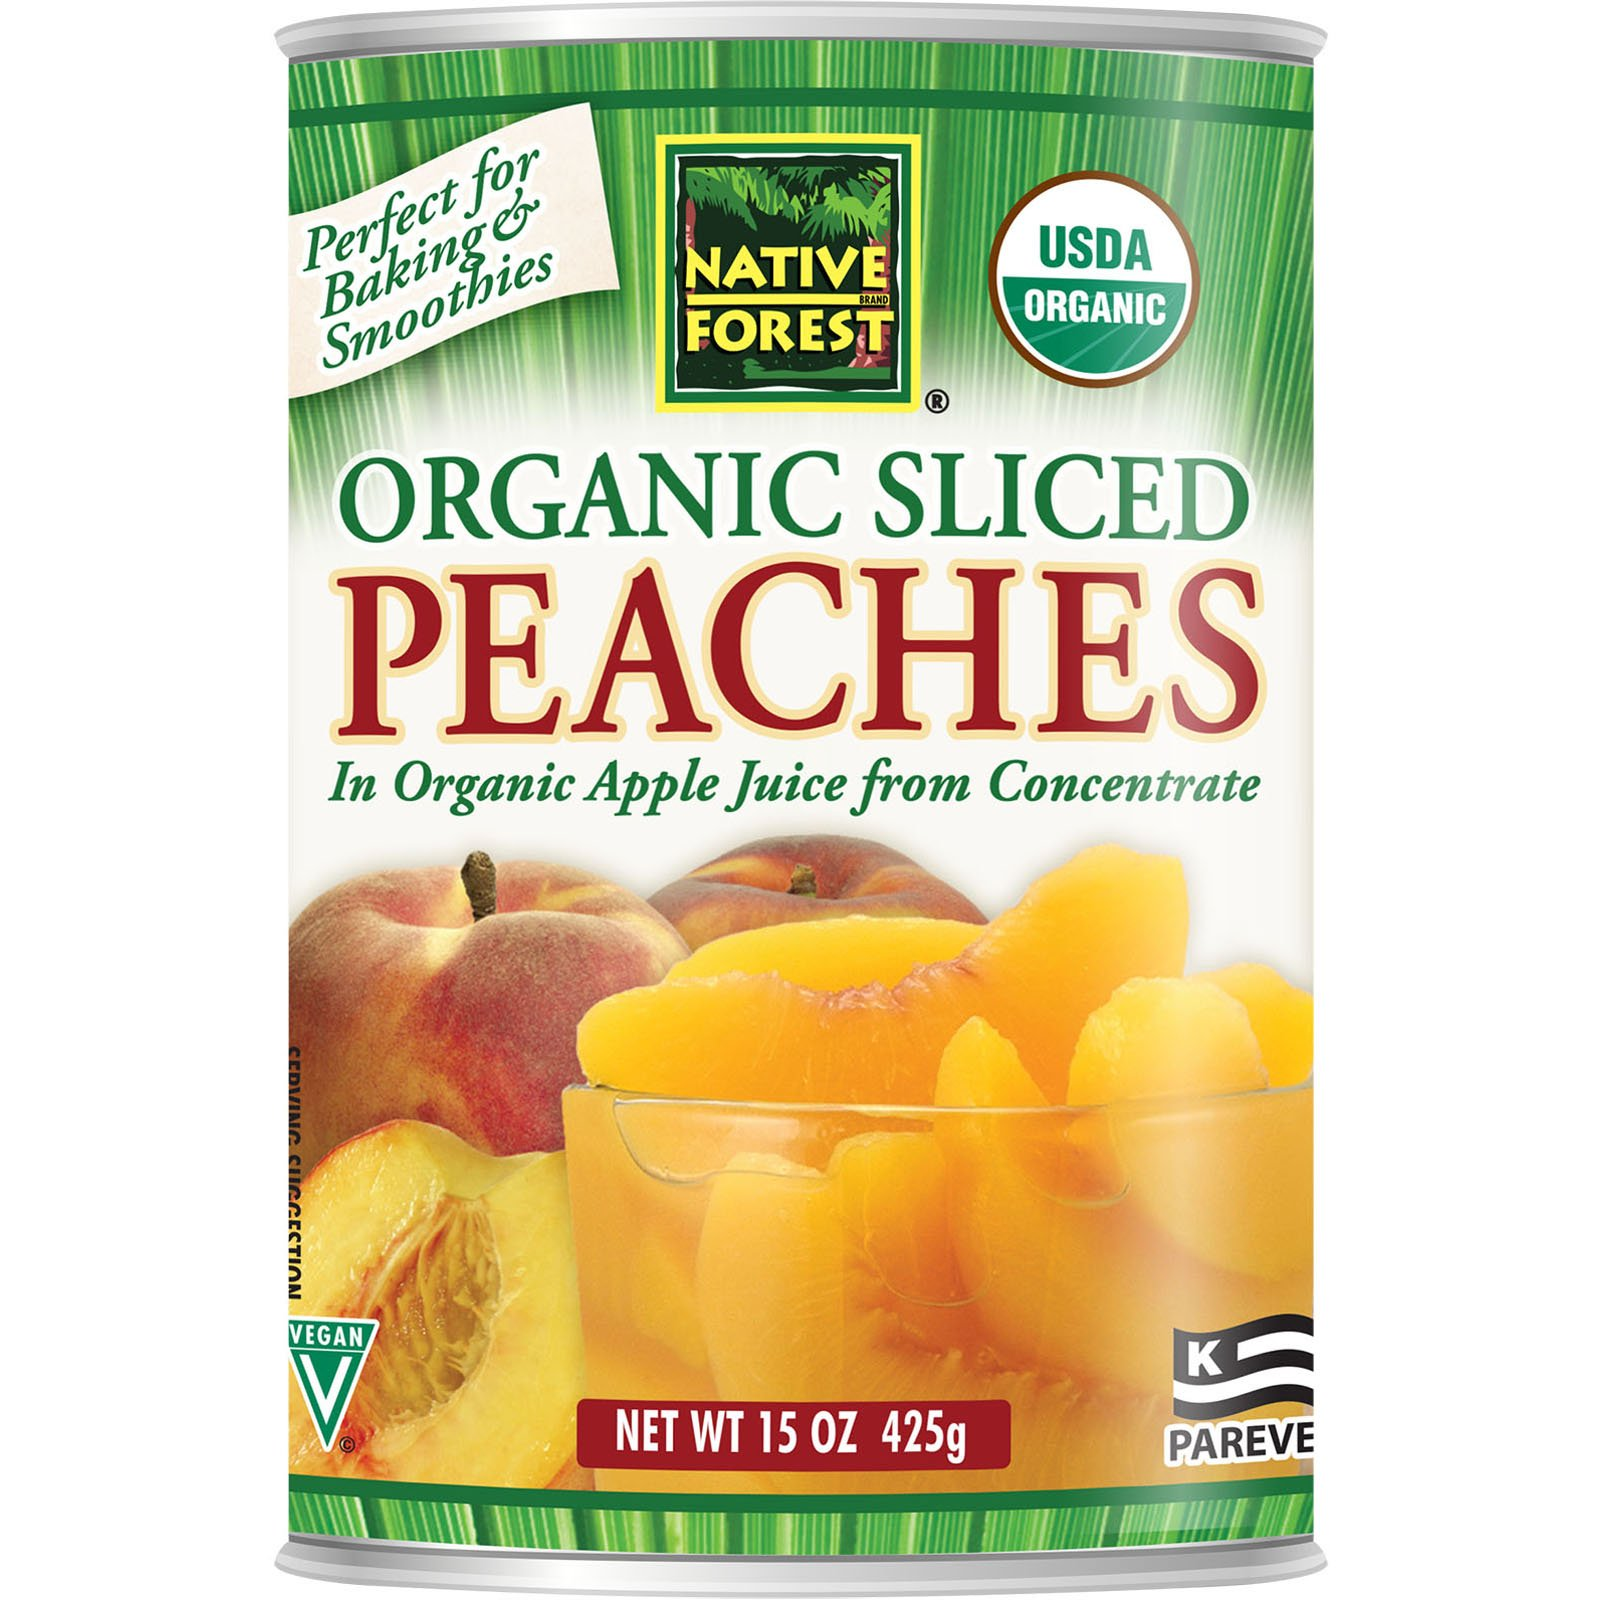 The Earth39s Crust Is Made Up Best Organic Apple Peach Oatmeal 42oz 6 Pack Packs Native Forest Edward Sons Sliced Peaches 15 Oz